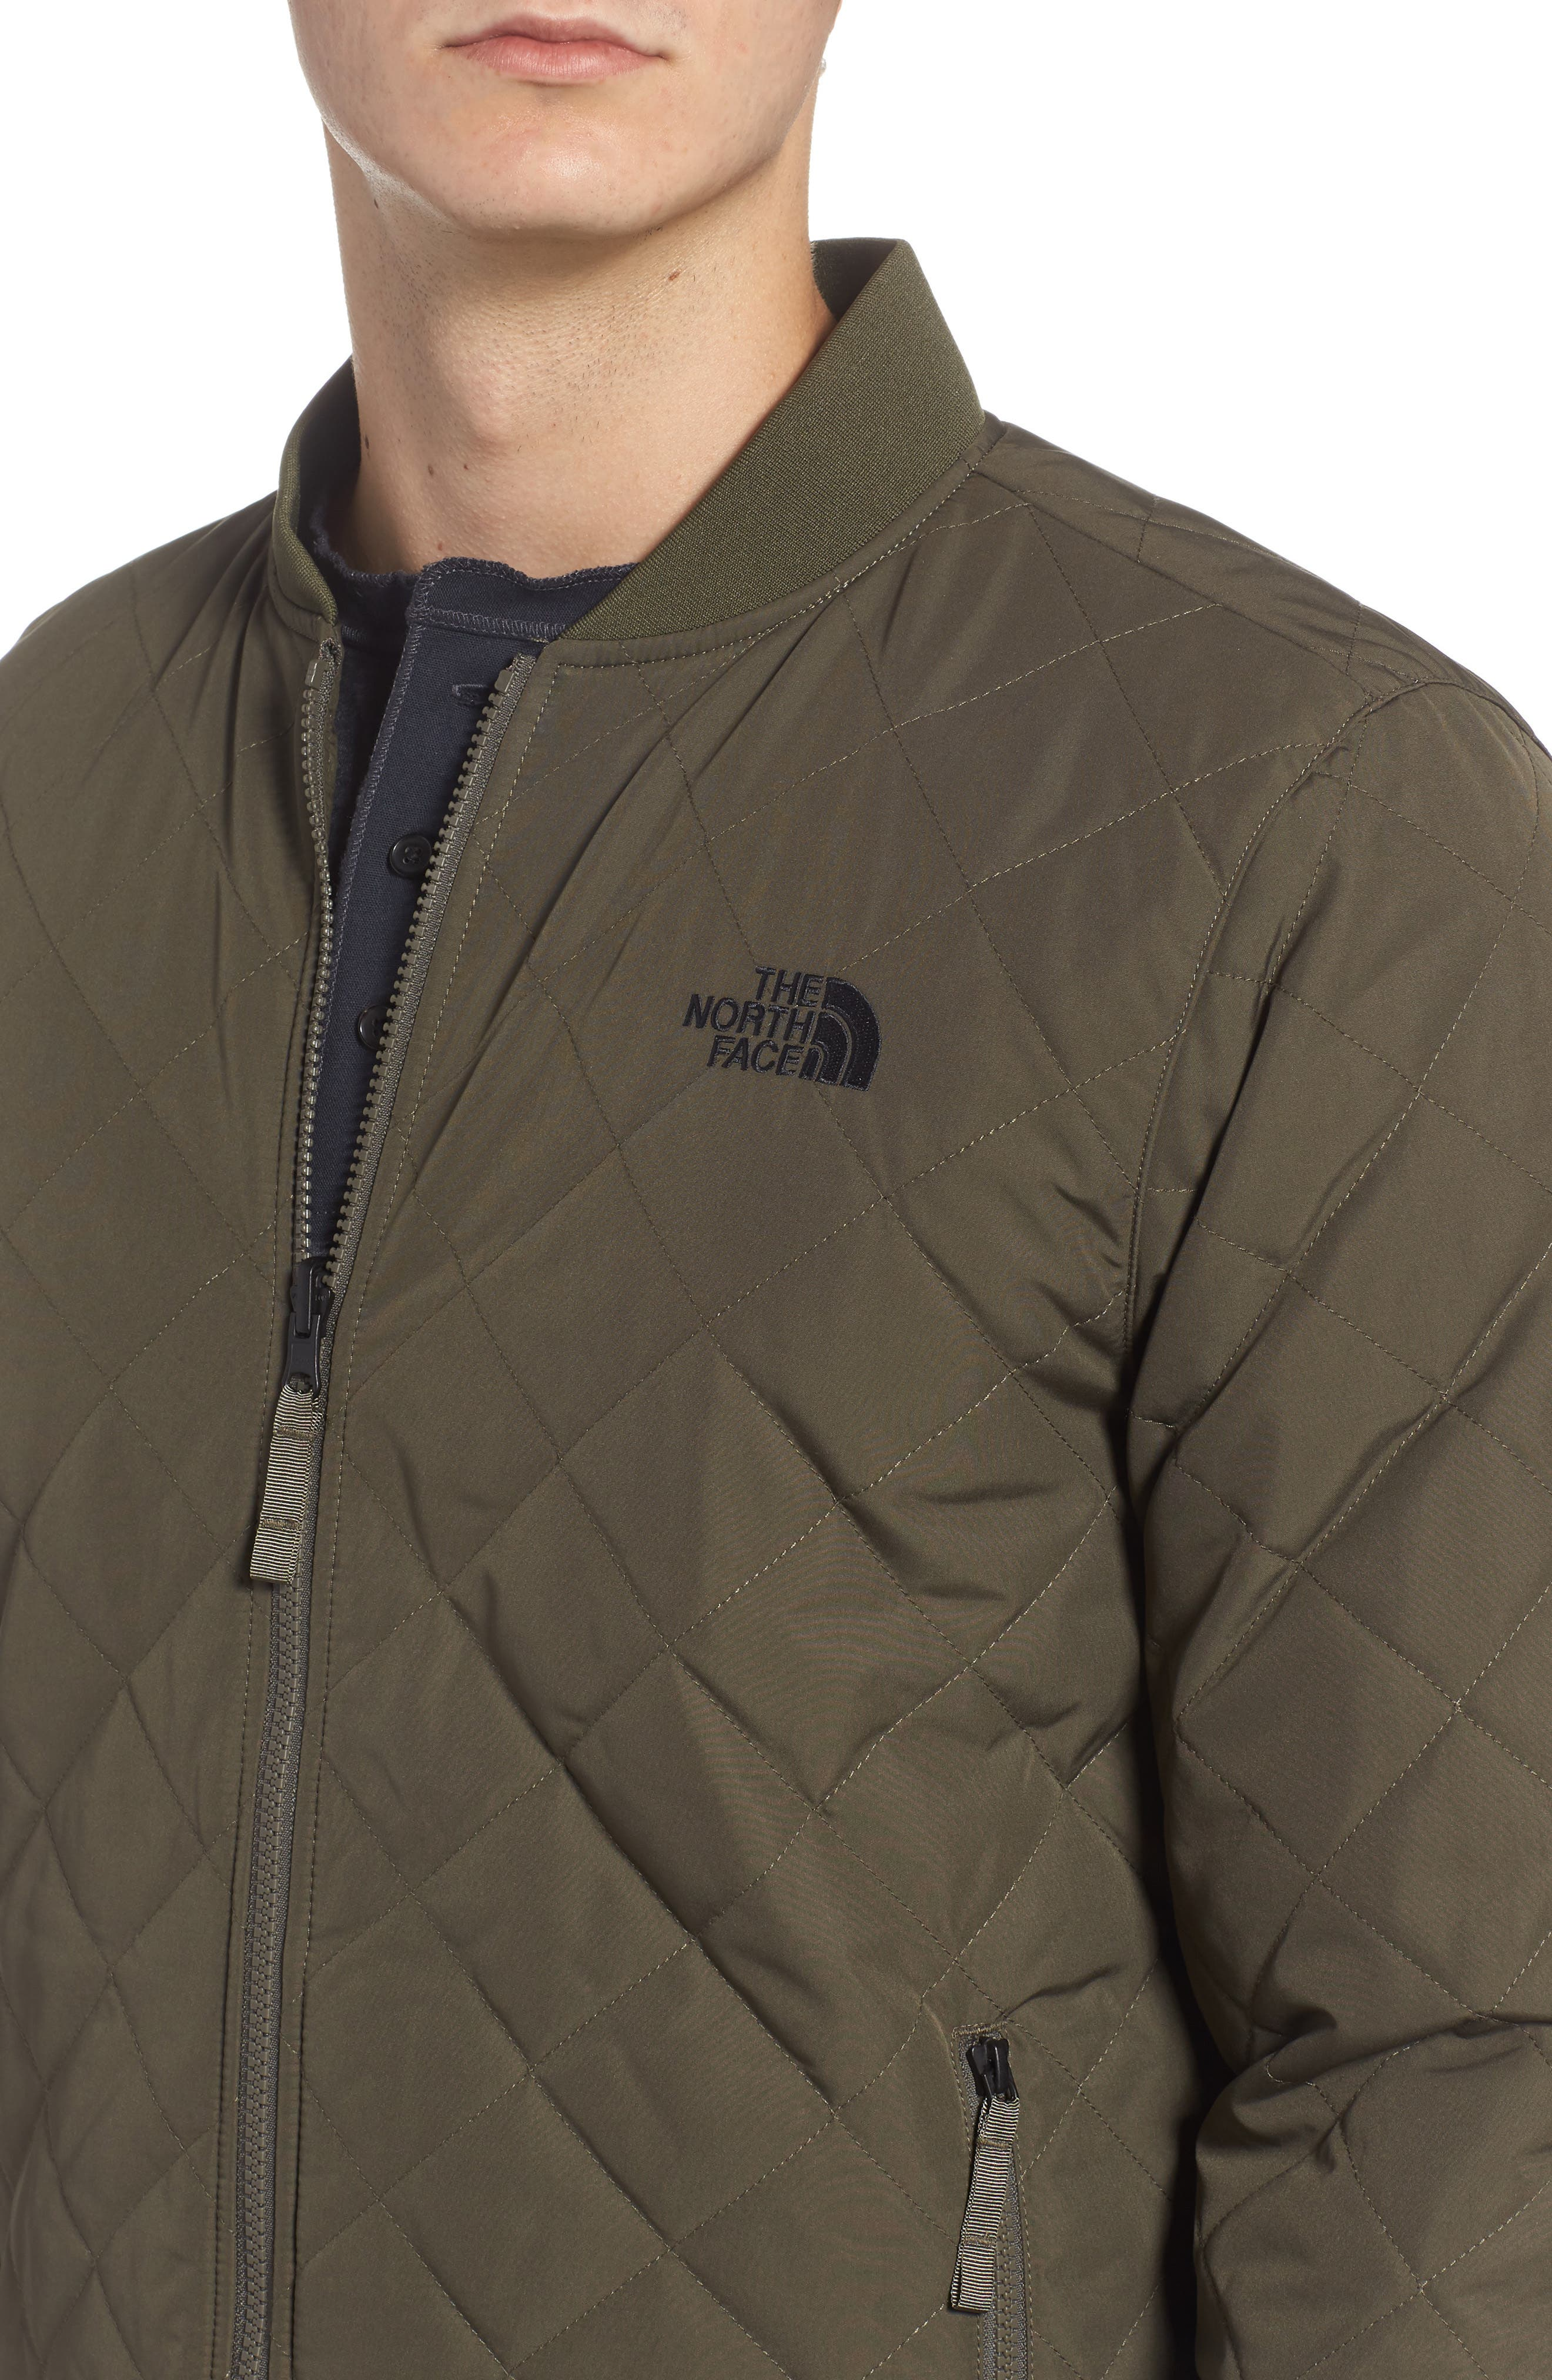 THE NORTH FACE,                             Jester Reversible Bomber Jacket,                             Alternate thumbnail 6, color,                             NEW TAUPE GREEN